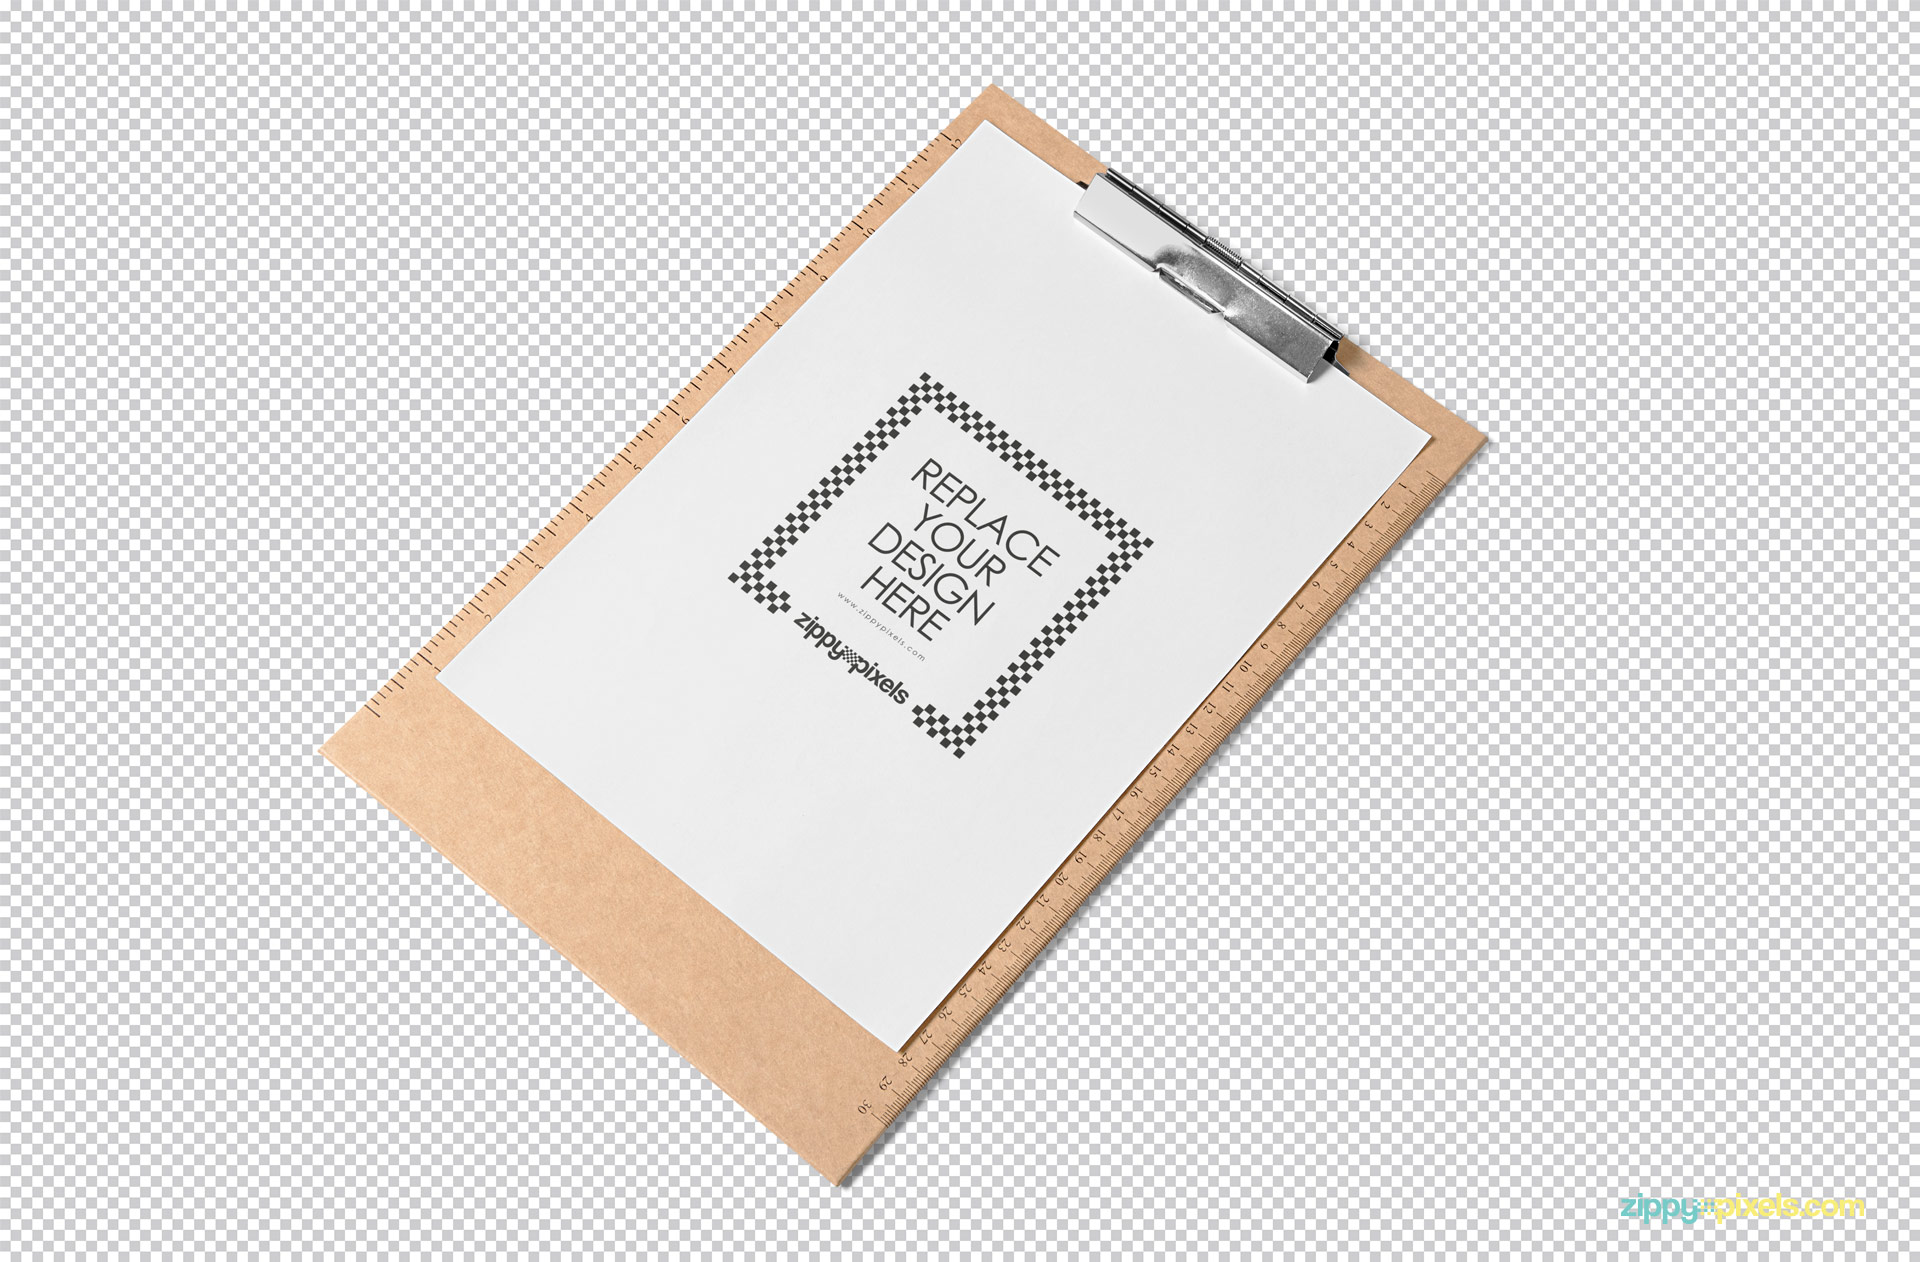 Simply use Adobe Photoshop to edit this paper mock up PSD